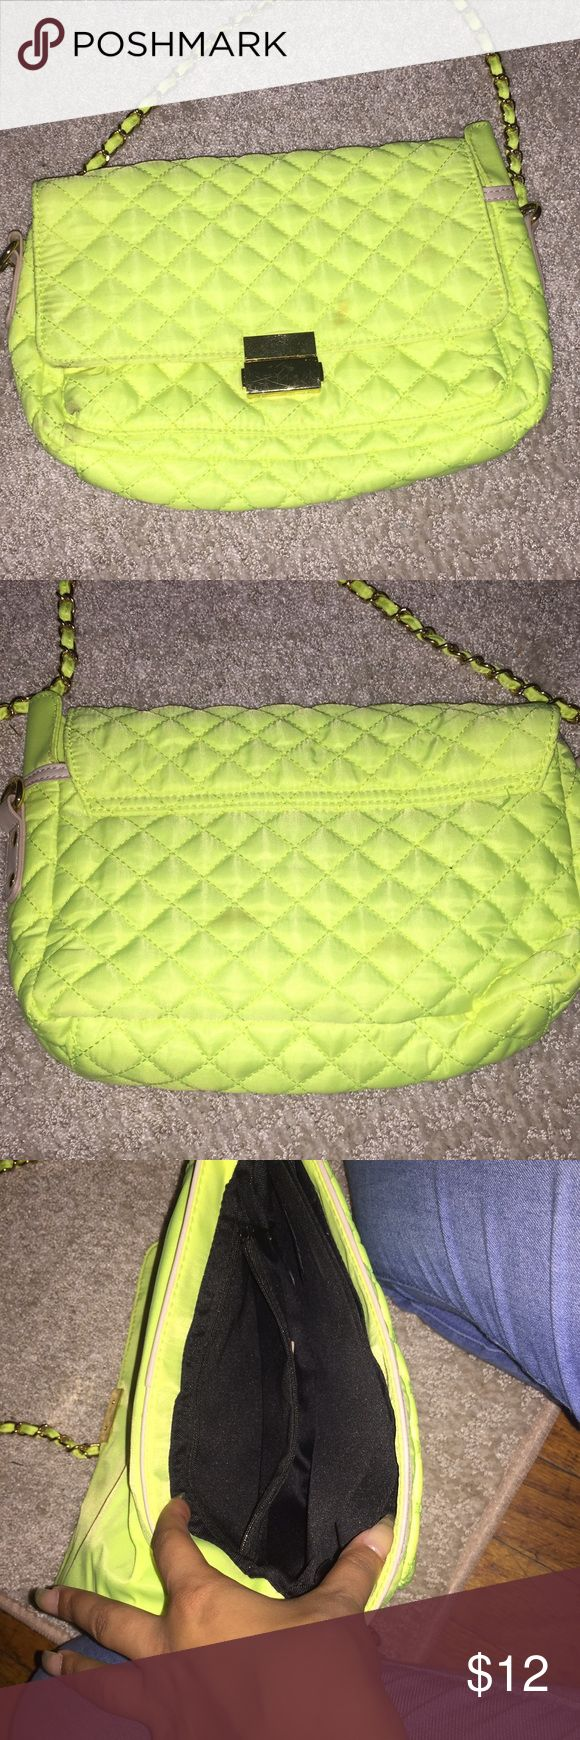 Lime green clutch bag with straps Has small stain in front & bag. Great color for summer Forever 21 Bags Crossbody Bags